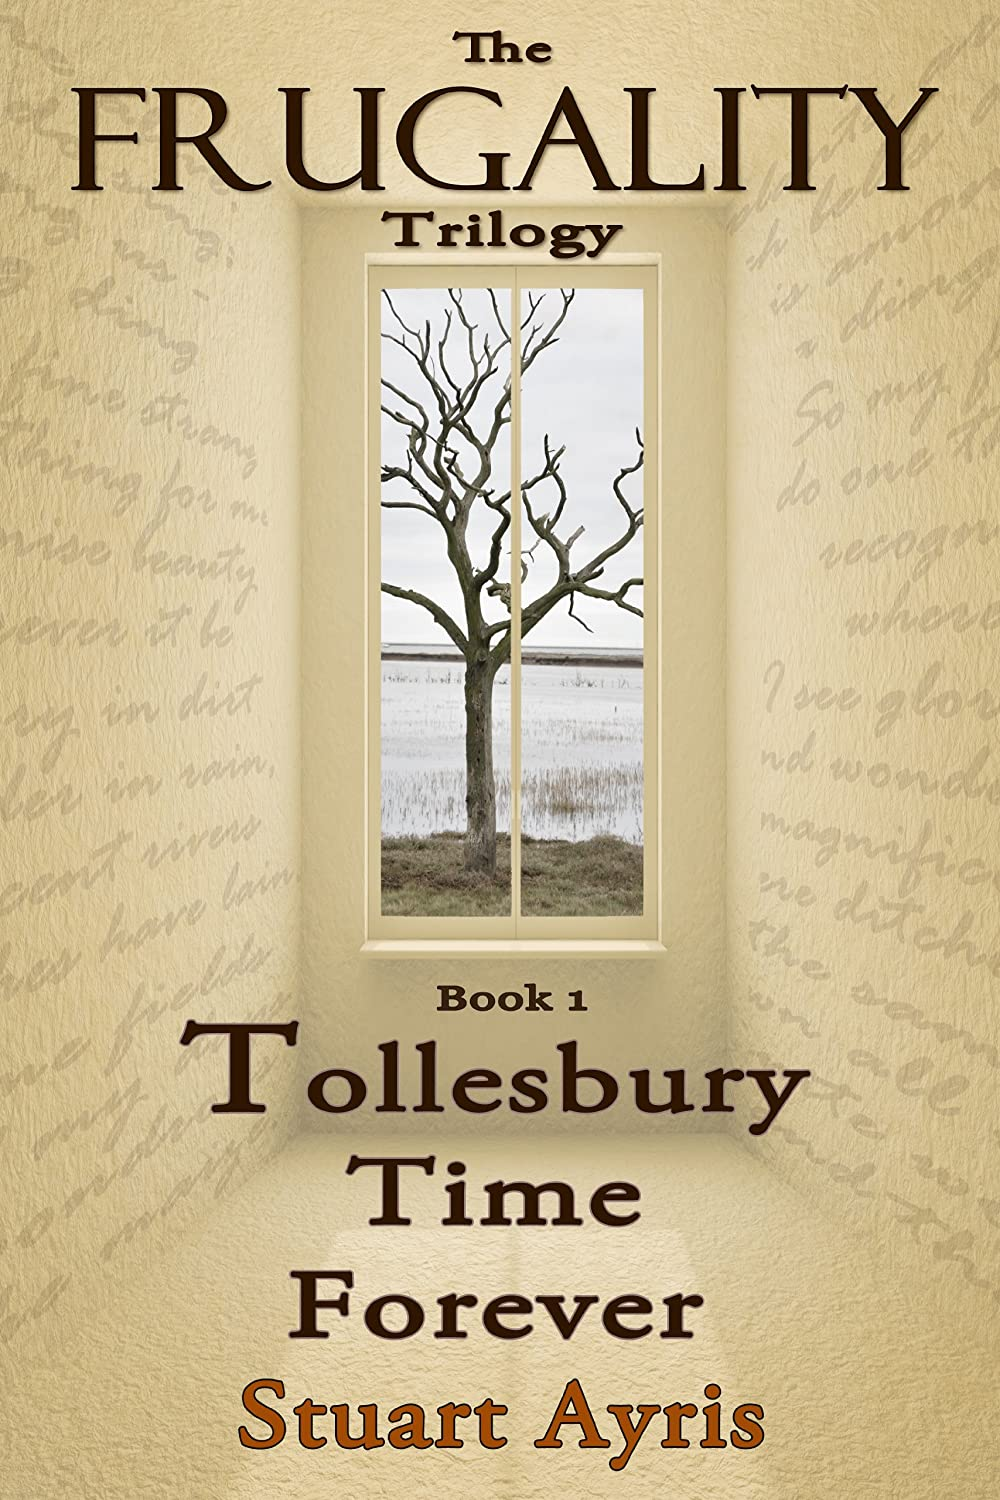 Tollesbury Time Forever (FRUGALITY - Book 1)